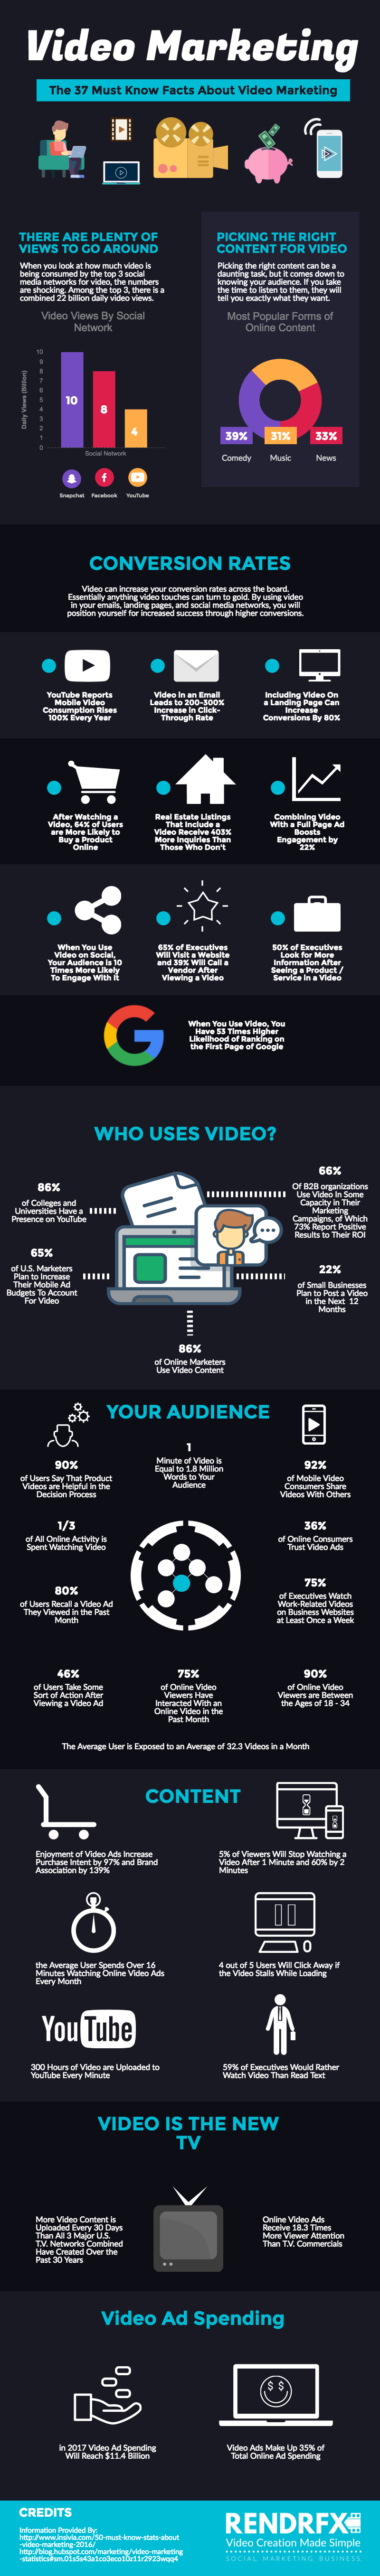 infographie-37-statistiques-marketing-video-a-connaitre-2017-blog-socialmediapro